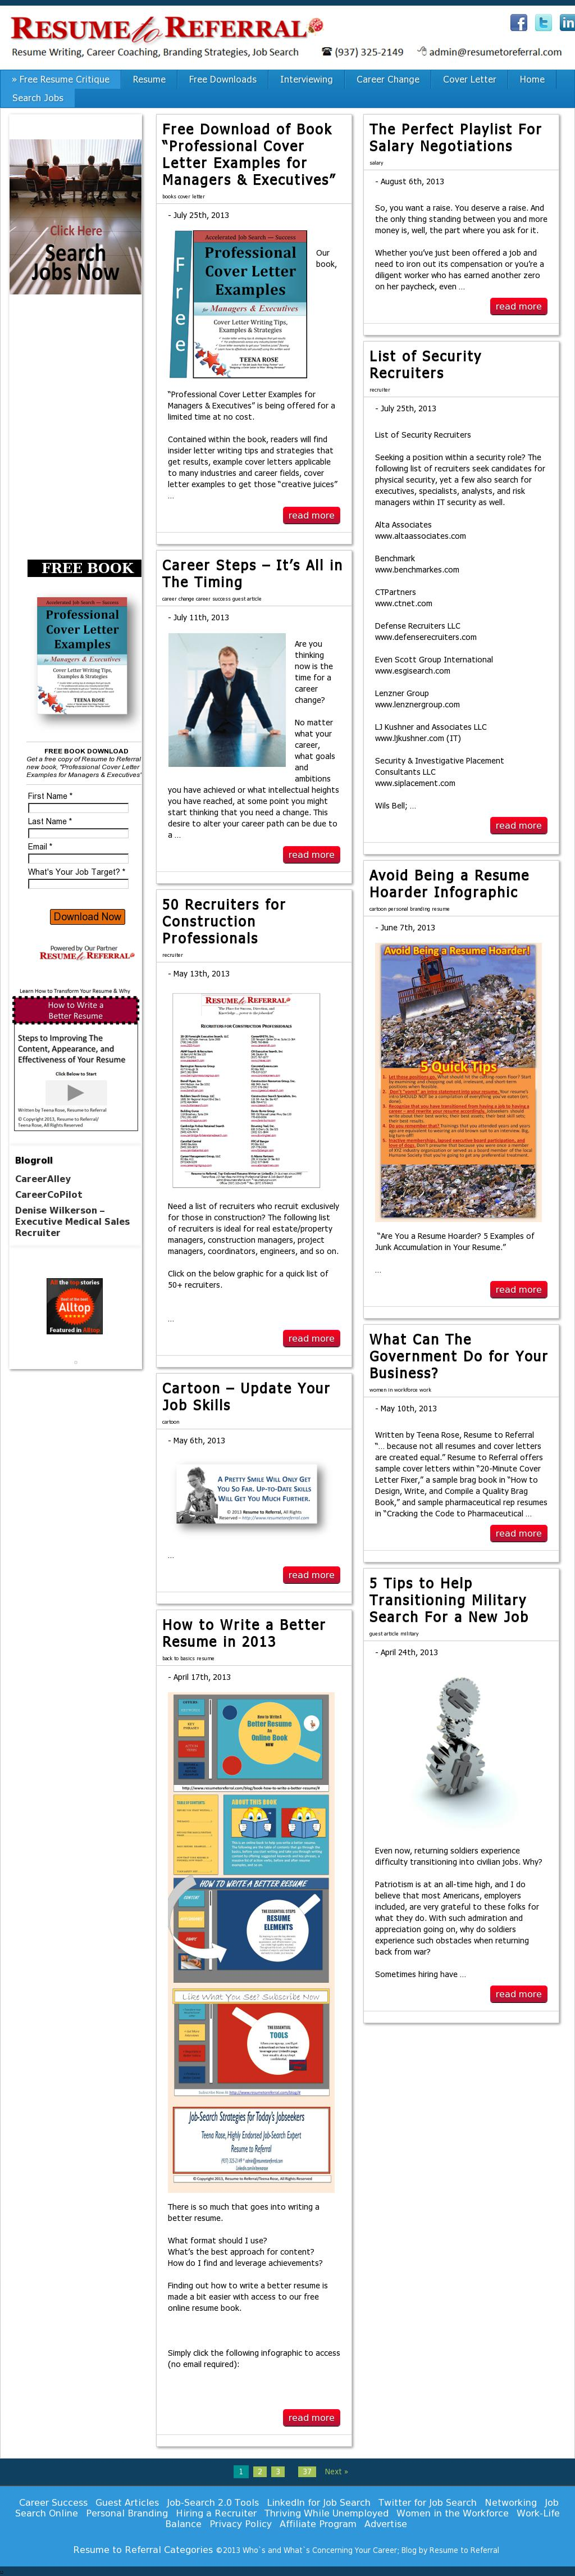 Resume Writing Services — Writing Resumes Since 1999